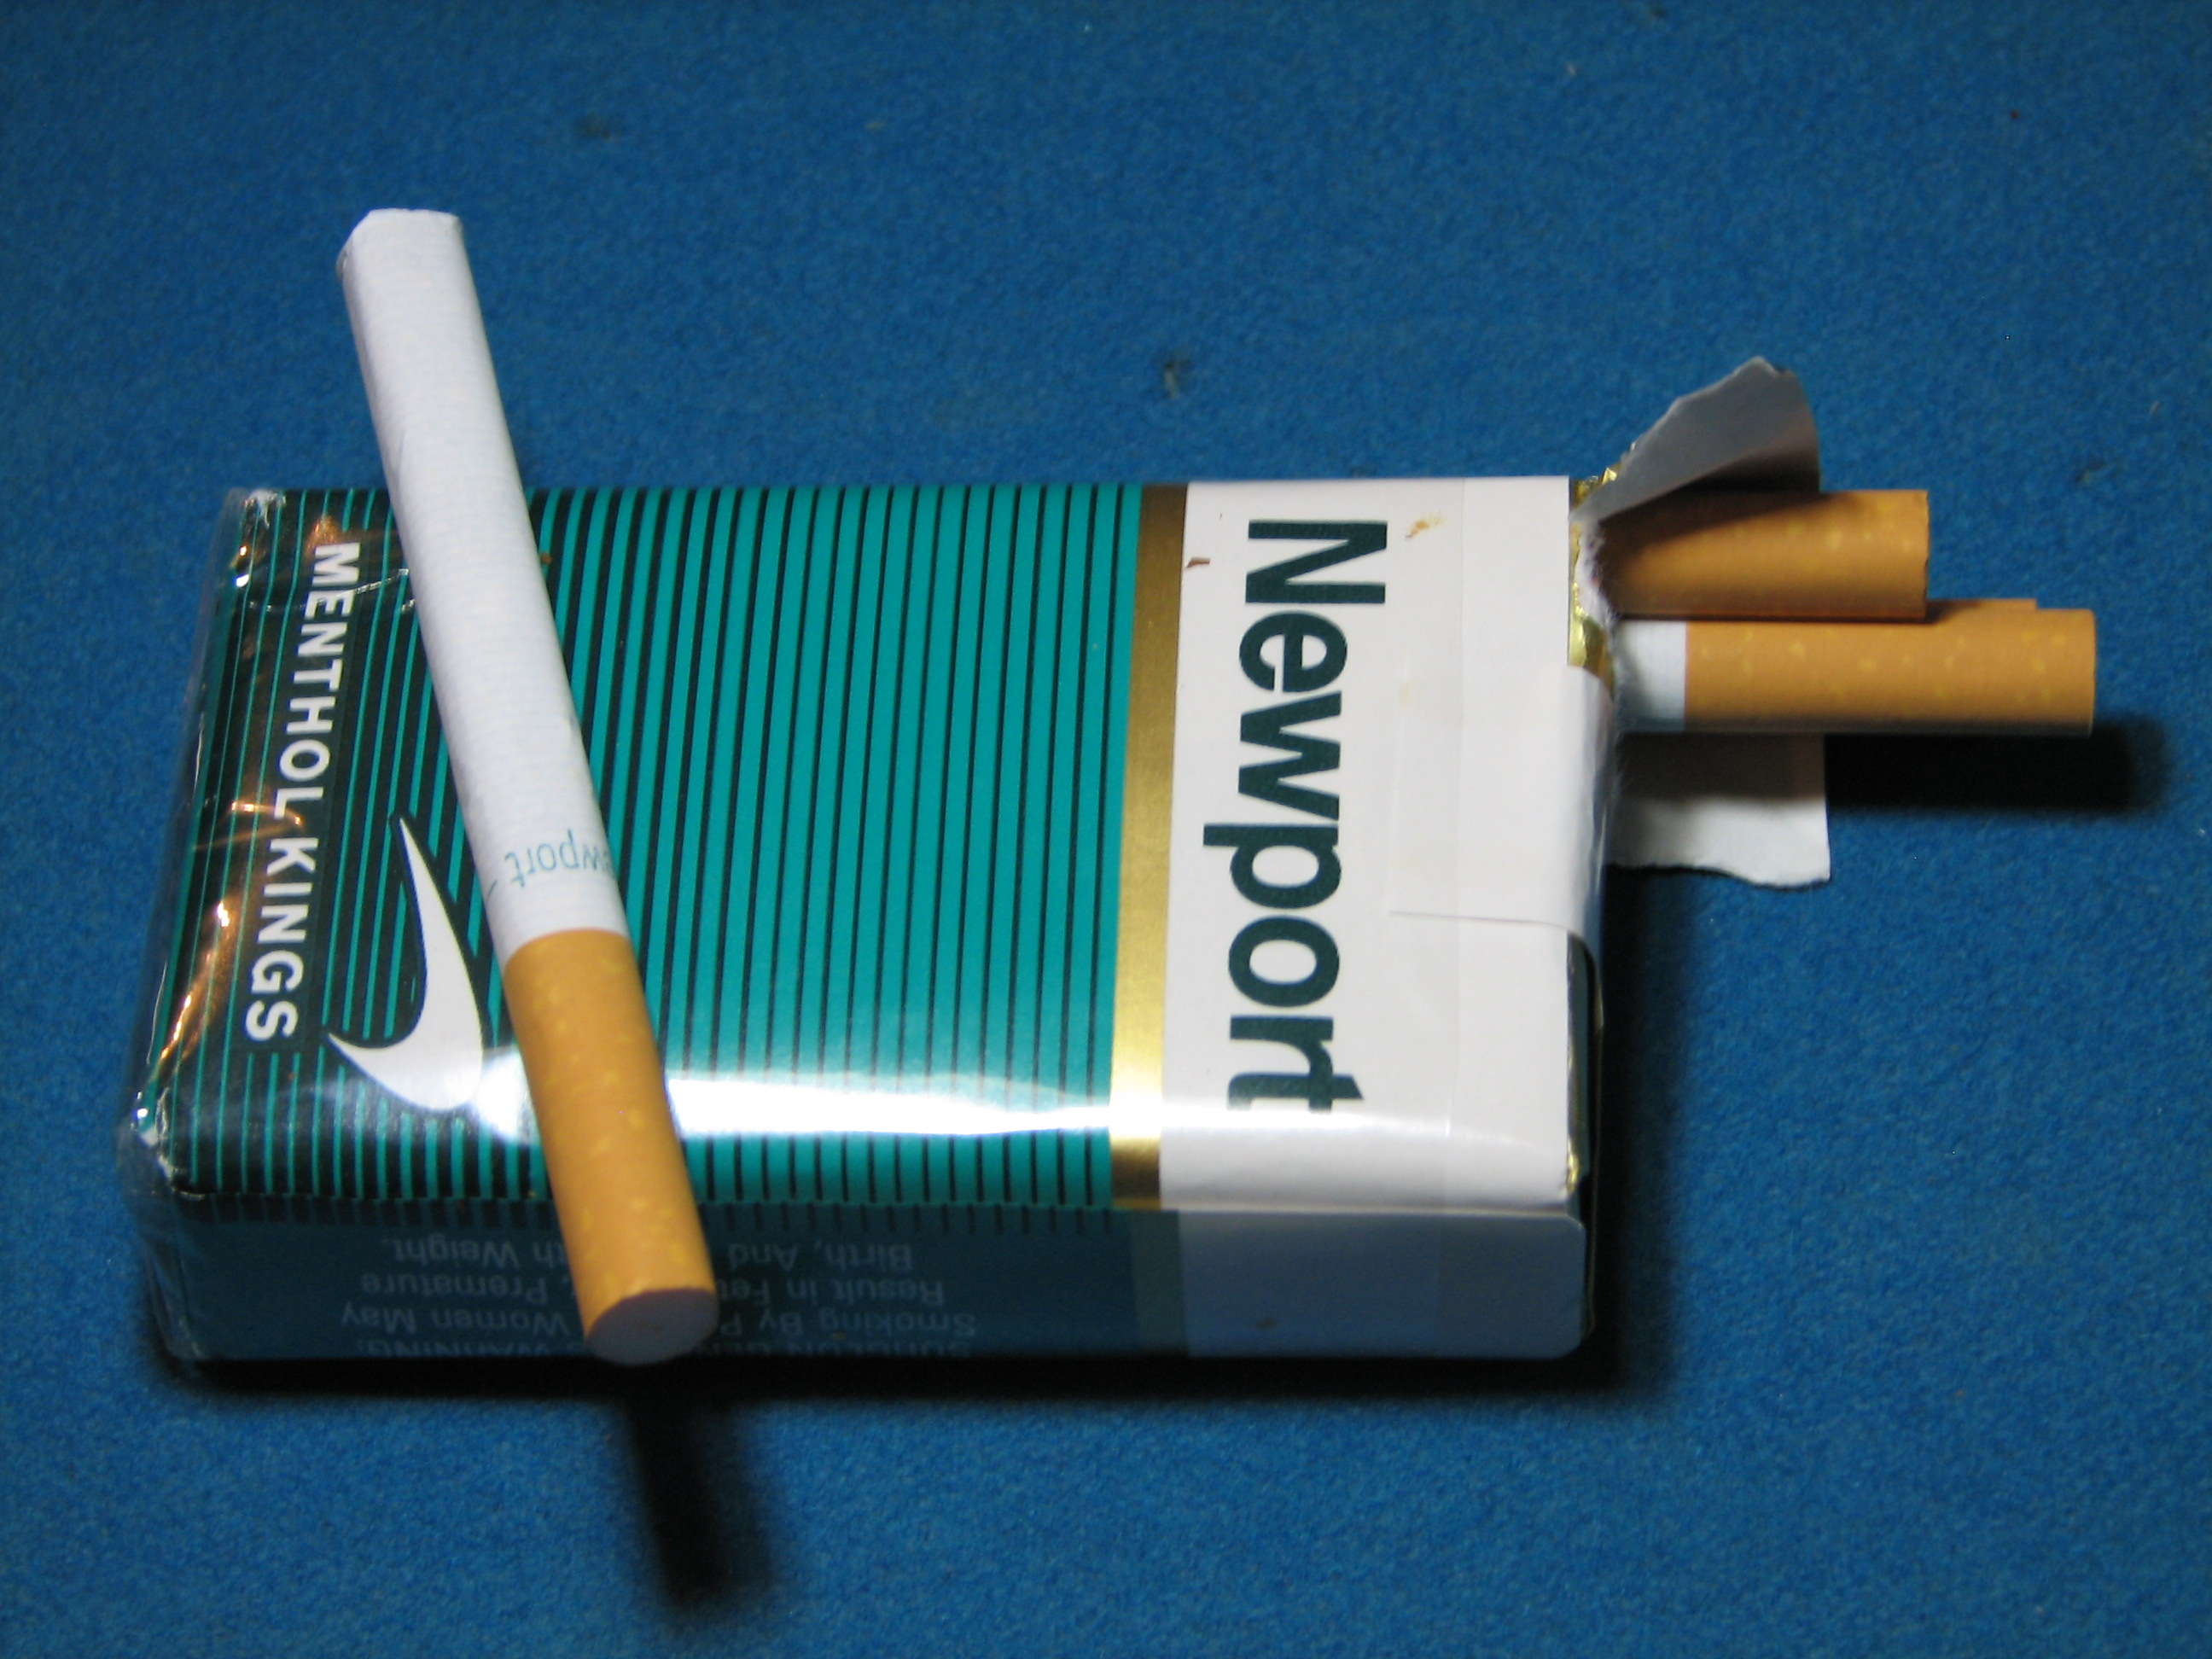 http://upload.wikimedia.org/wikipedia/commons/0/0e/Newport_cigarettes.jpg